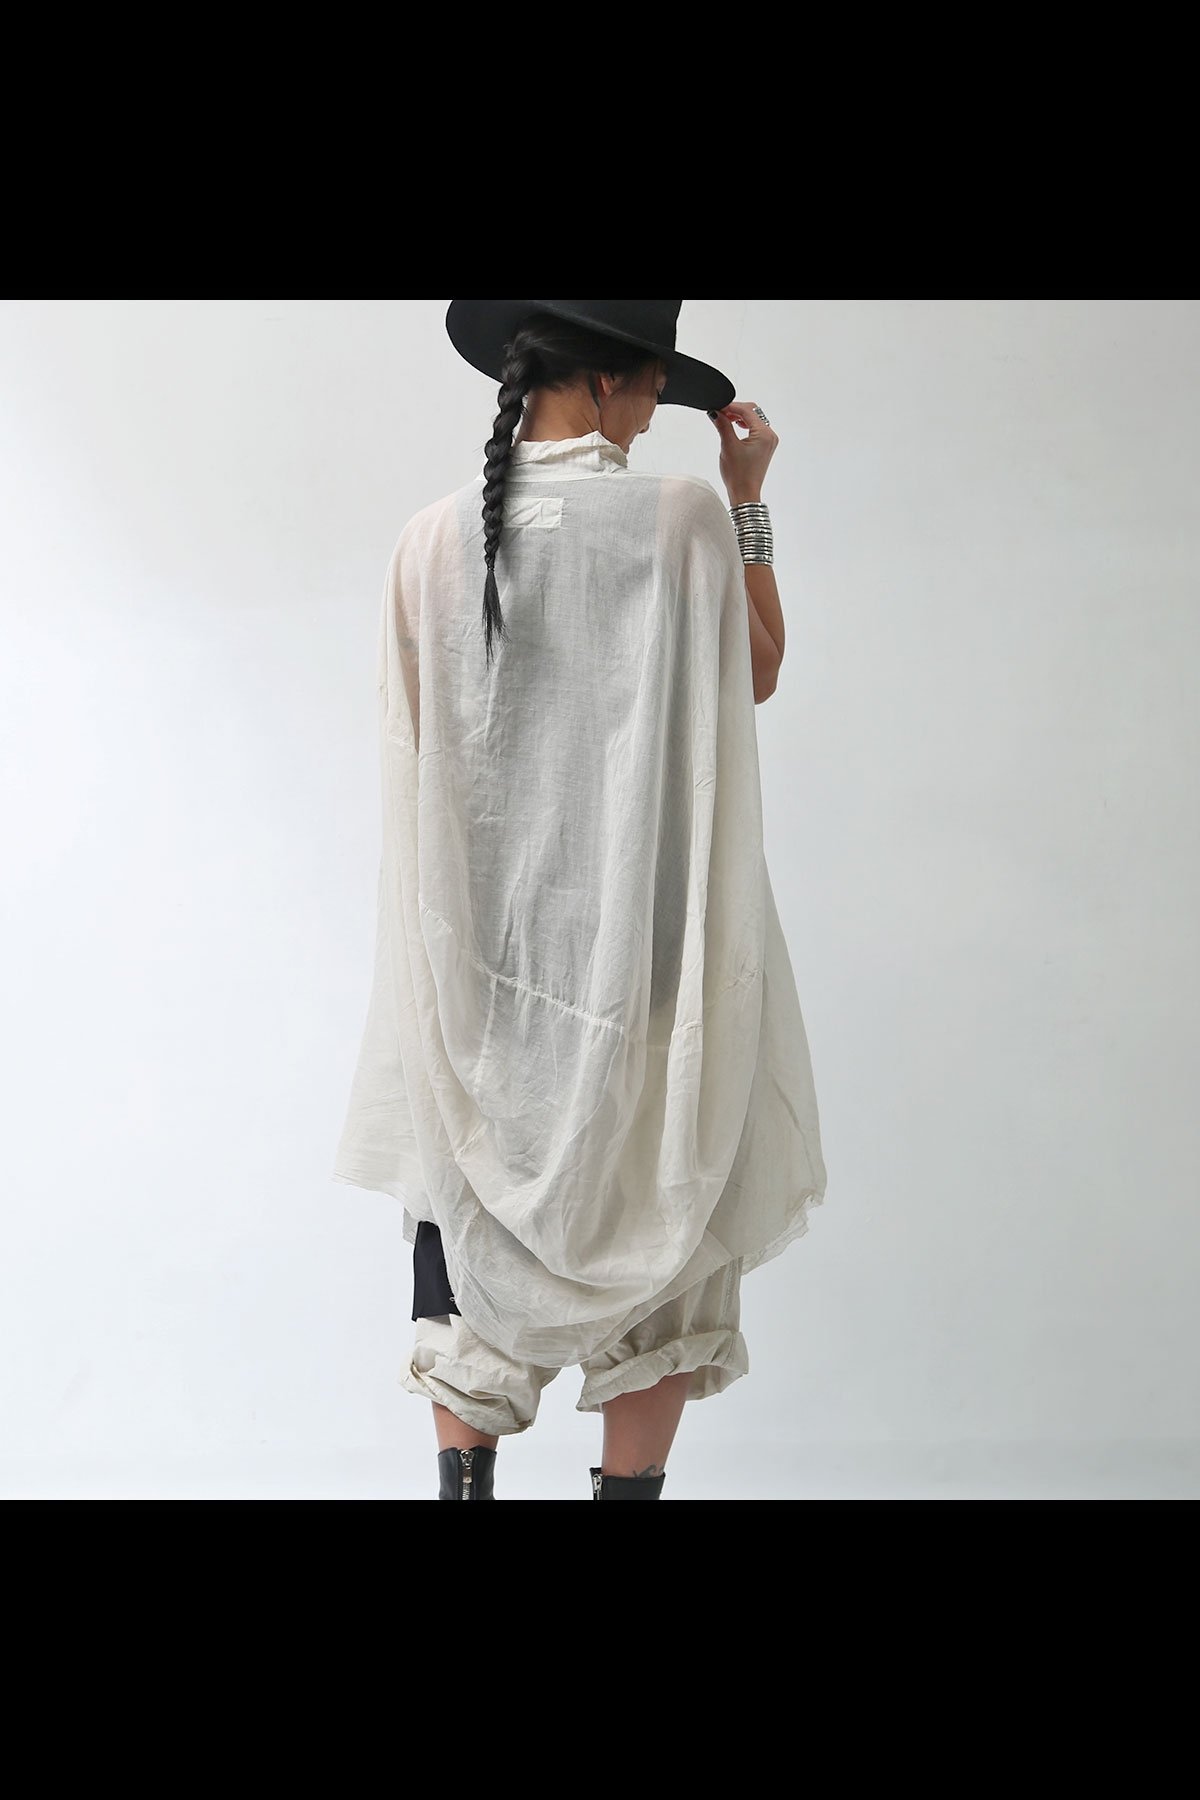 <img class='new_mark_img1' src='https://img.shop-pro.jp/img/new/icons8.gif' style='border:none;display:inline;margin:0px;padding:0px;width:auto;' />BACK DRAPE LONG SHIRT 258 0908_MARBLE(BEIGE)